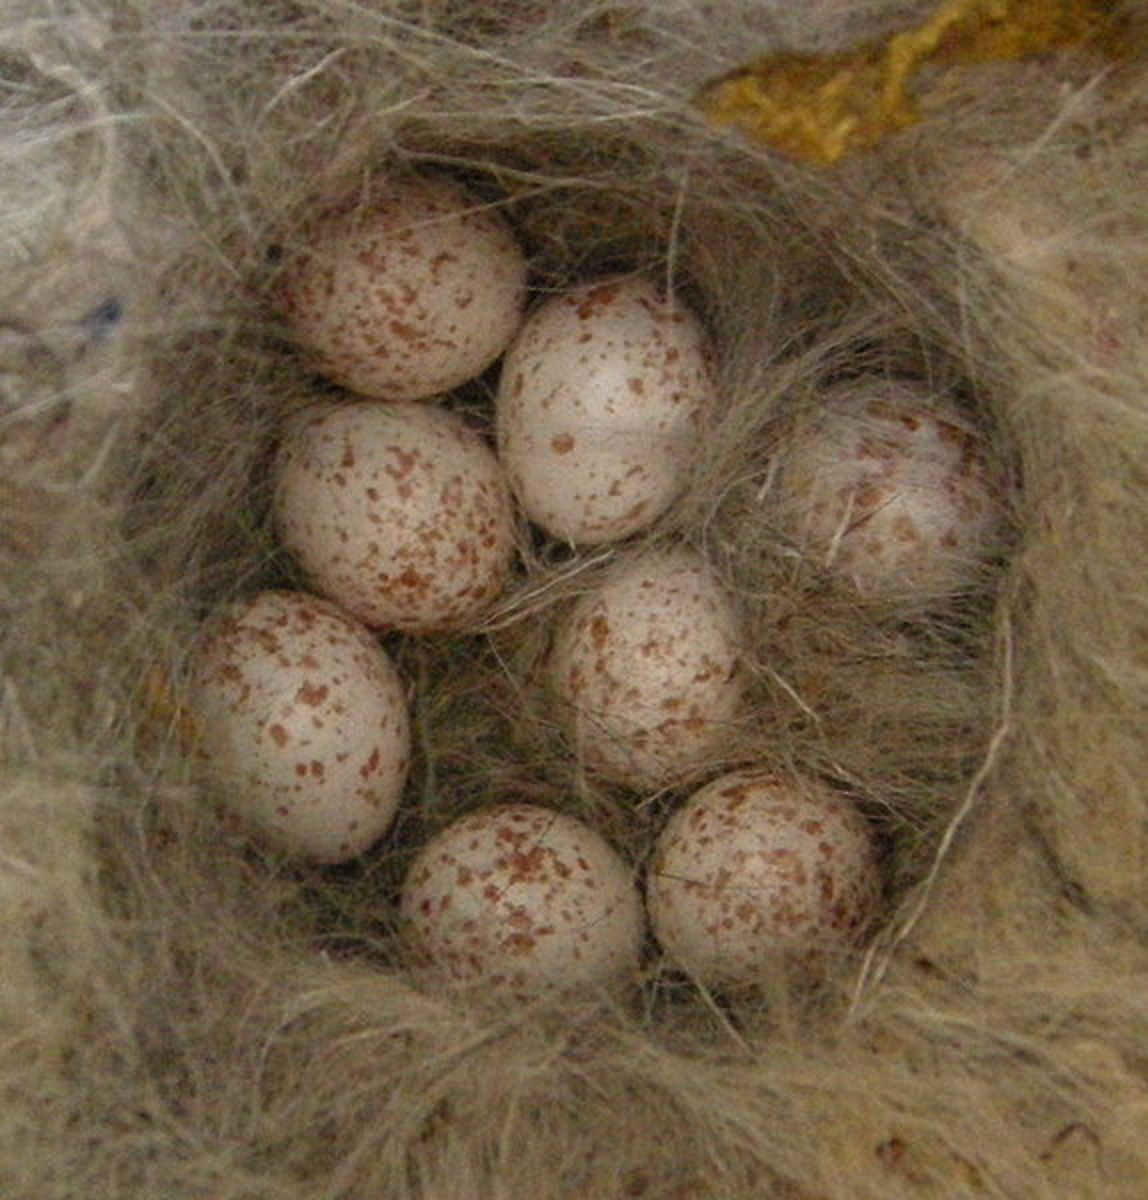 A clutch of great tit eggs. The blue tit's eggs are slightly smaller but very similar in colour. In both species the female incubates the eggs by herself for 12-16 days, often fed by the male while she is sitting on the nest..